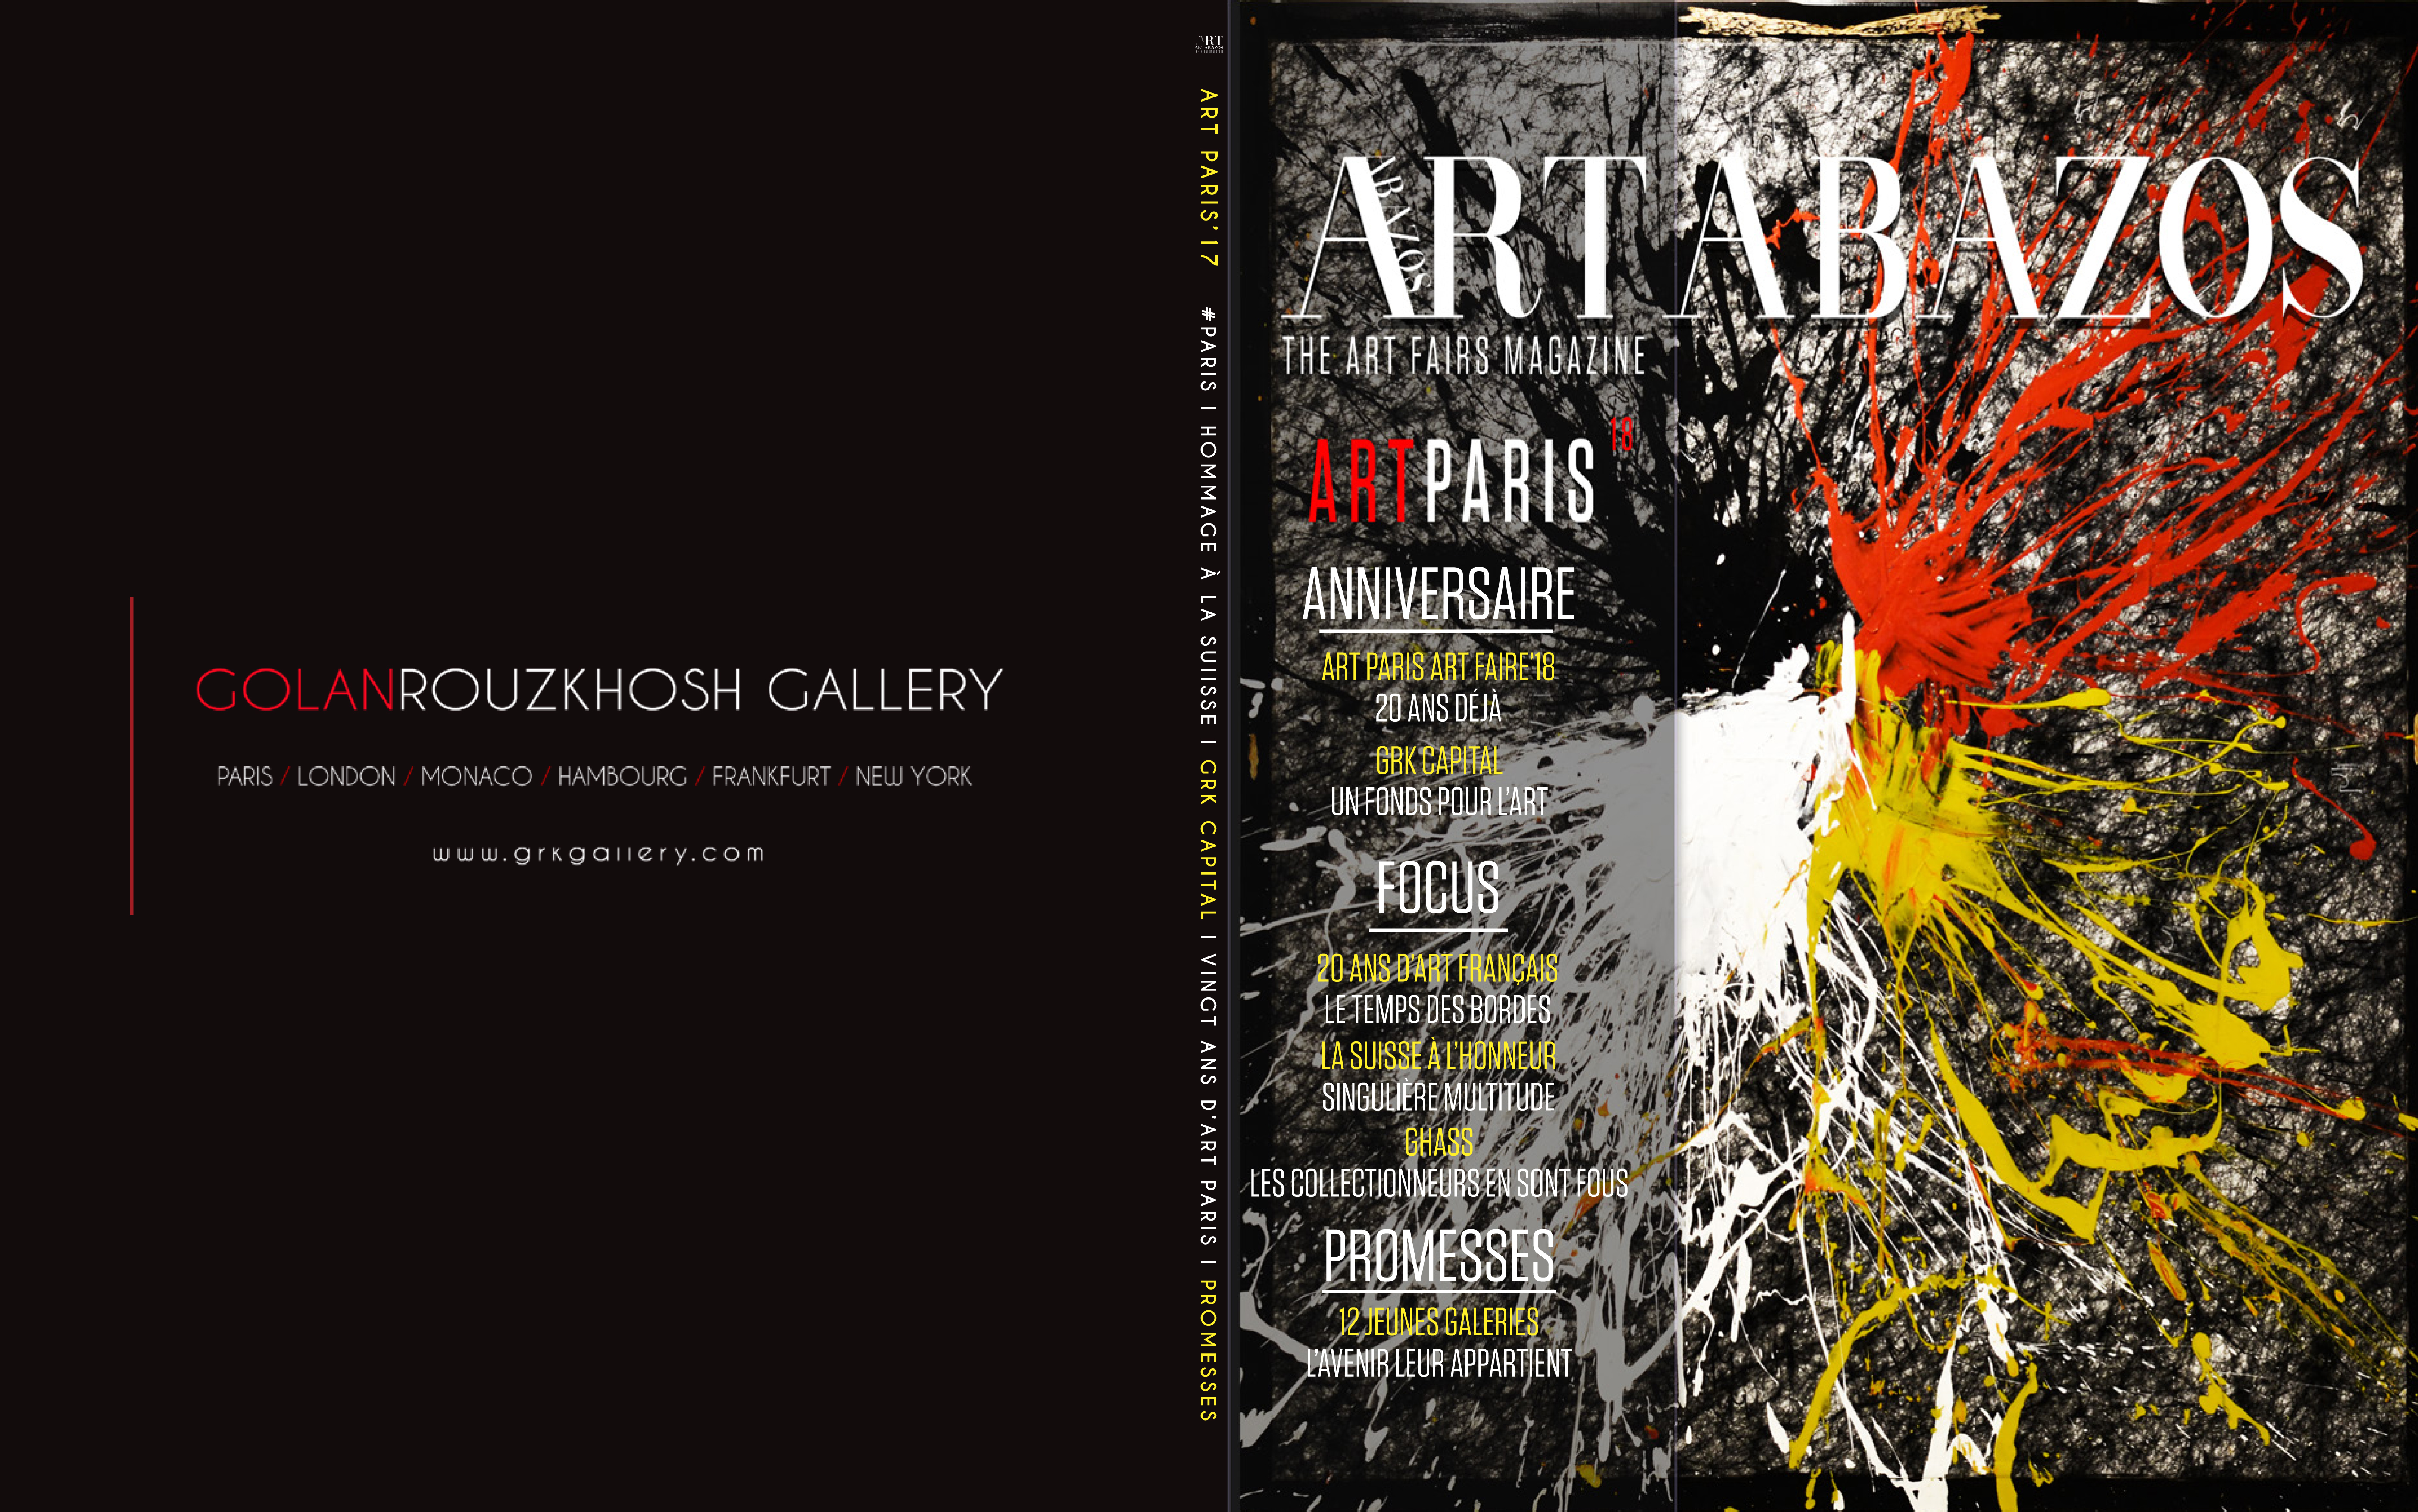 Cahier couv Artabazos Art Paris copie-1.